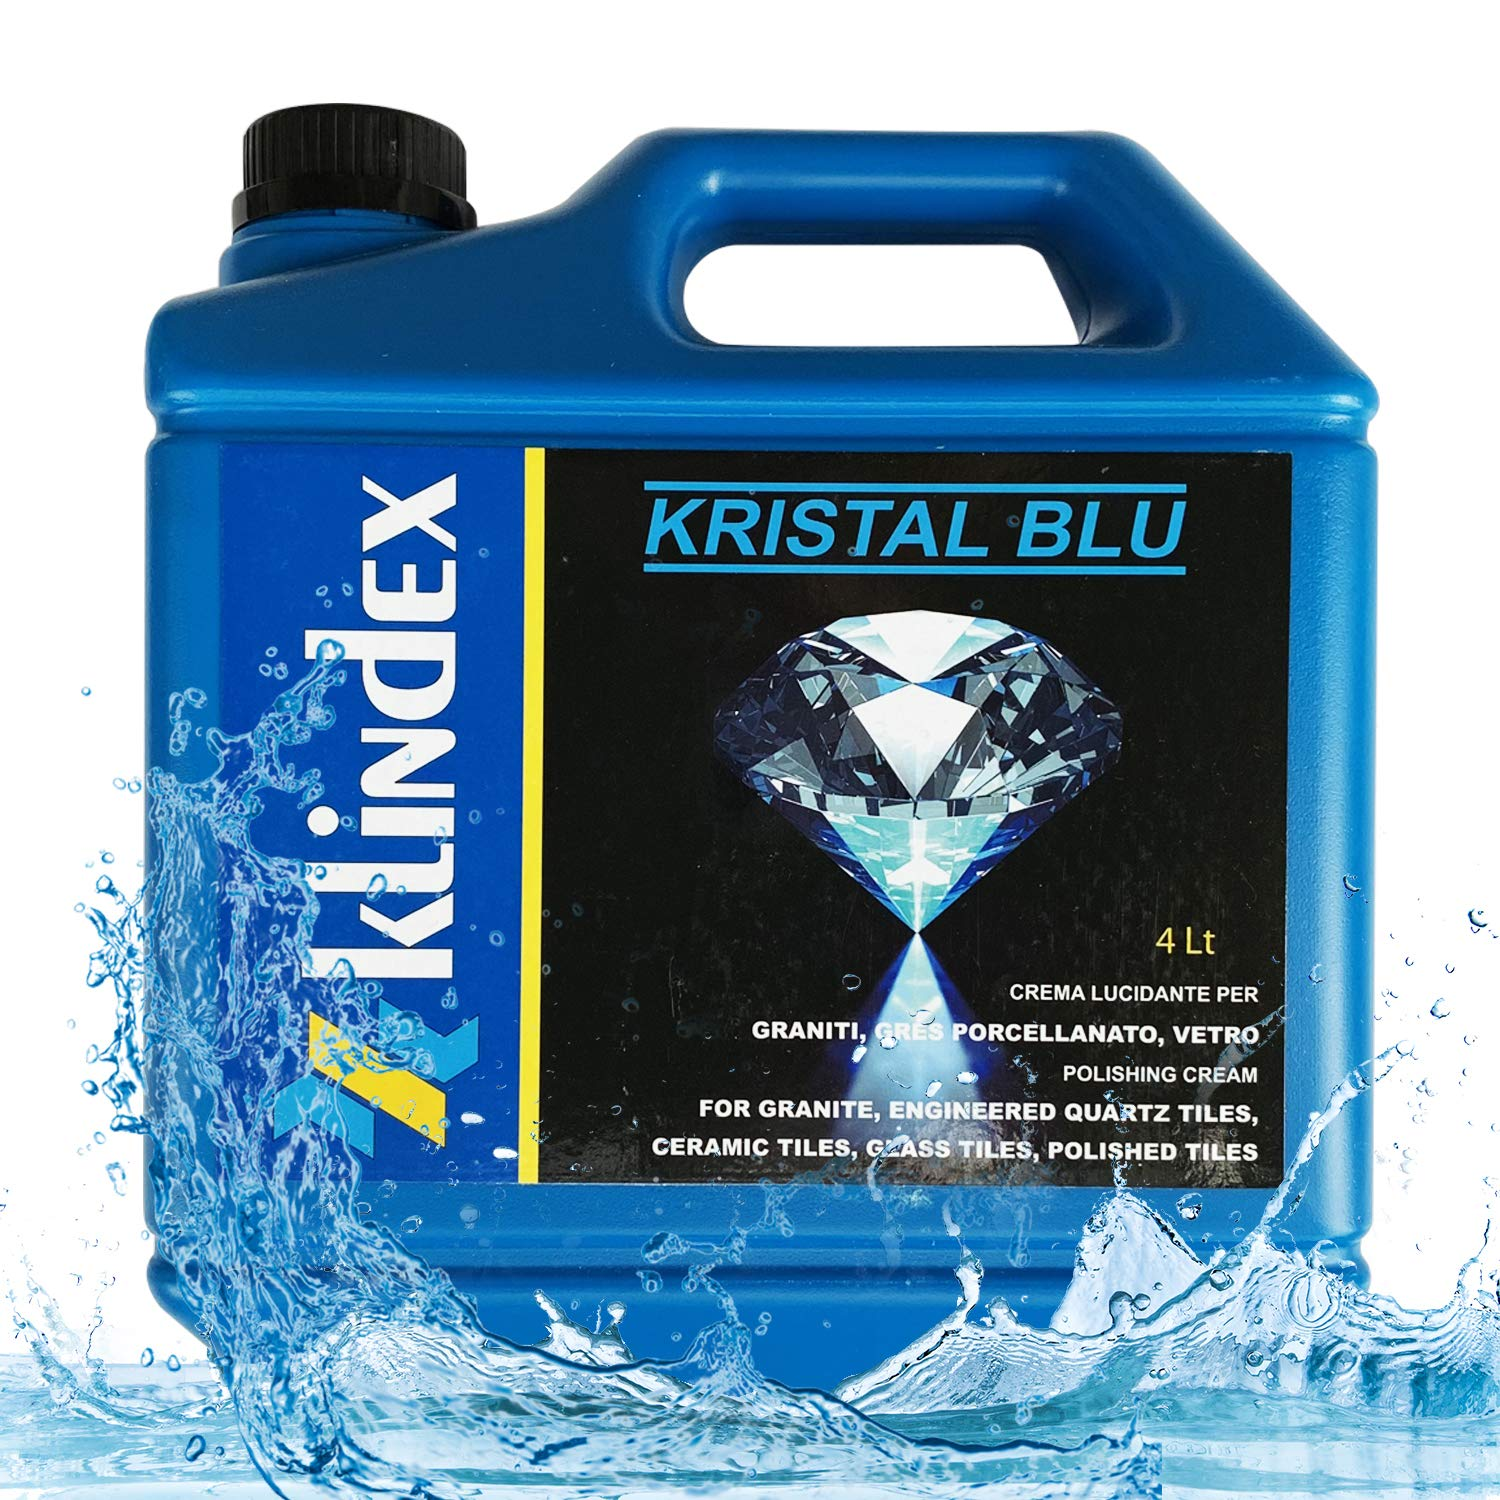 Klindex Kristal Blue Granite Polishing Cream - Stone, Tile Crystallizer - High Gloss, Strength and Wear Resistant Protection from Dust, Acid/Alkali, Scratches and Stains - 4L/1.05 Gal - Made in Italy by Klindex (Image #1)